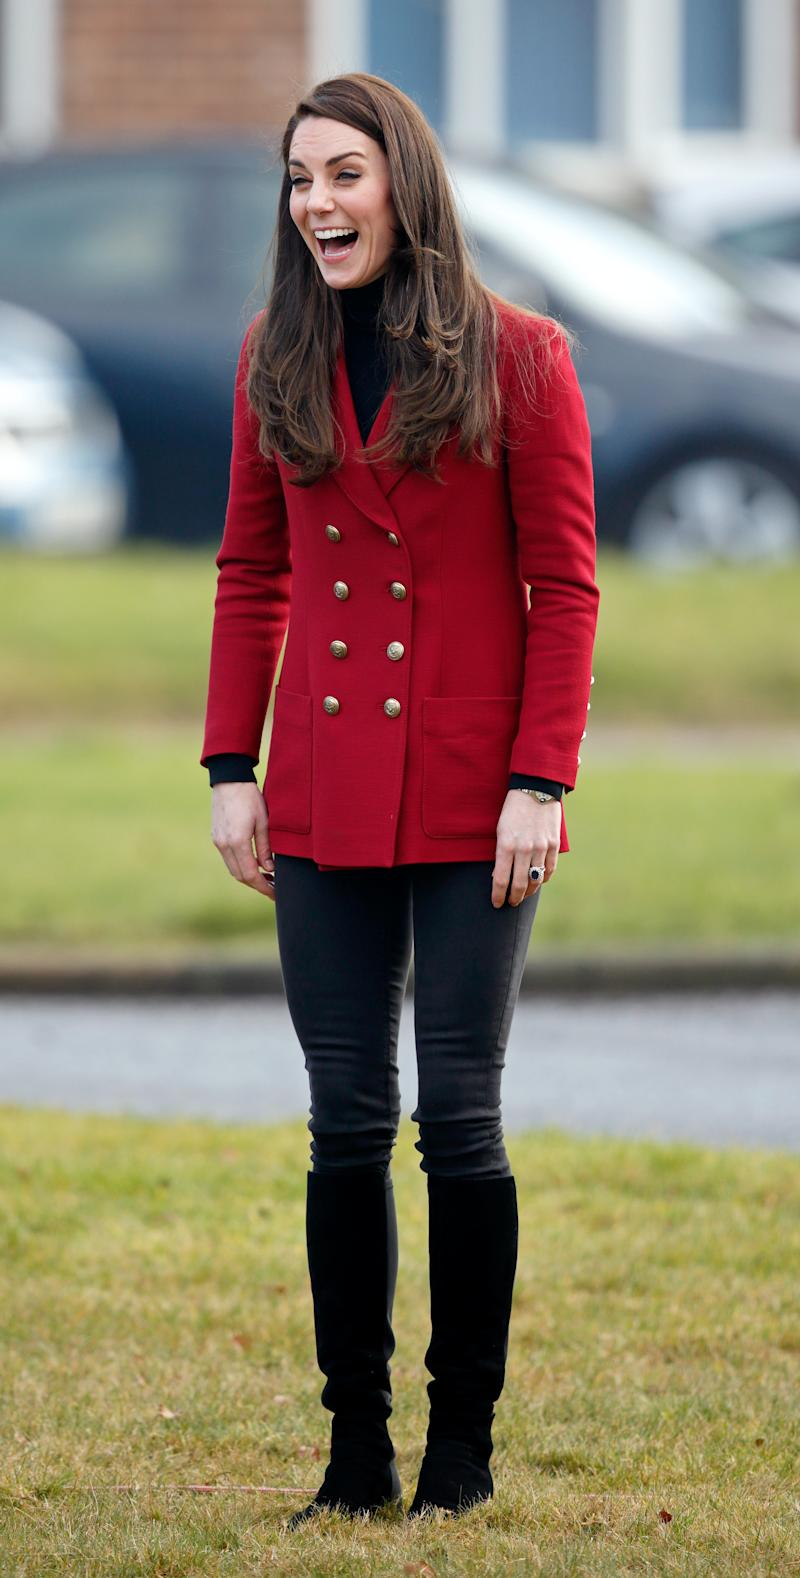 STAMFORD, UNITED KINGDOM - FEBRUARY 14: (EMBARGOED FOR PUBLICATION IN UK NEWSPAPERS UNTIL 48 HOURS AFTER CREATE DATE AND TIME) Catherine, Duchess of Cambridge joins in with a team building exercise during a visit to RAF Wittering to meet air cadets taking part in a half-term skills development camp on February 14, 2017 in Stamford, England. The Duchess of Cambridge is Royal Patron and Honorary Air Commandant of the Air Cadet Organisation. (Photo by Max Mumby/Indigo/Getty Images)